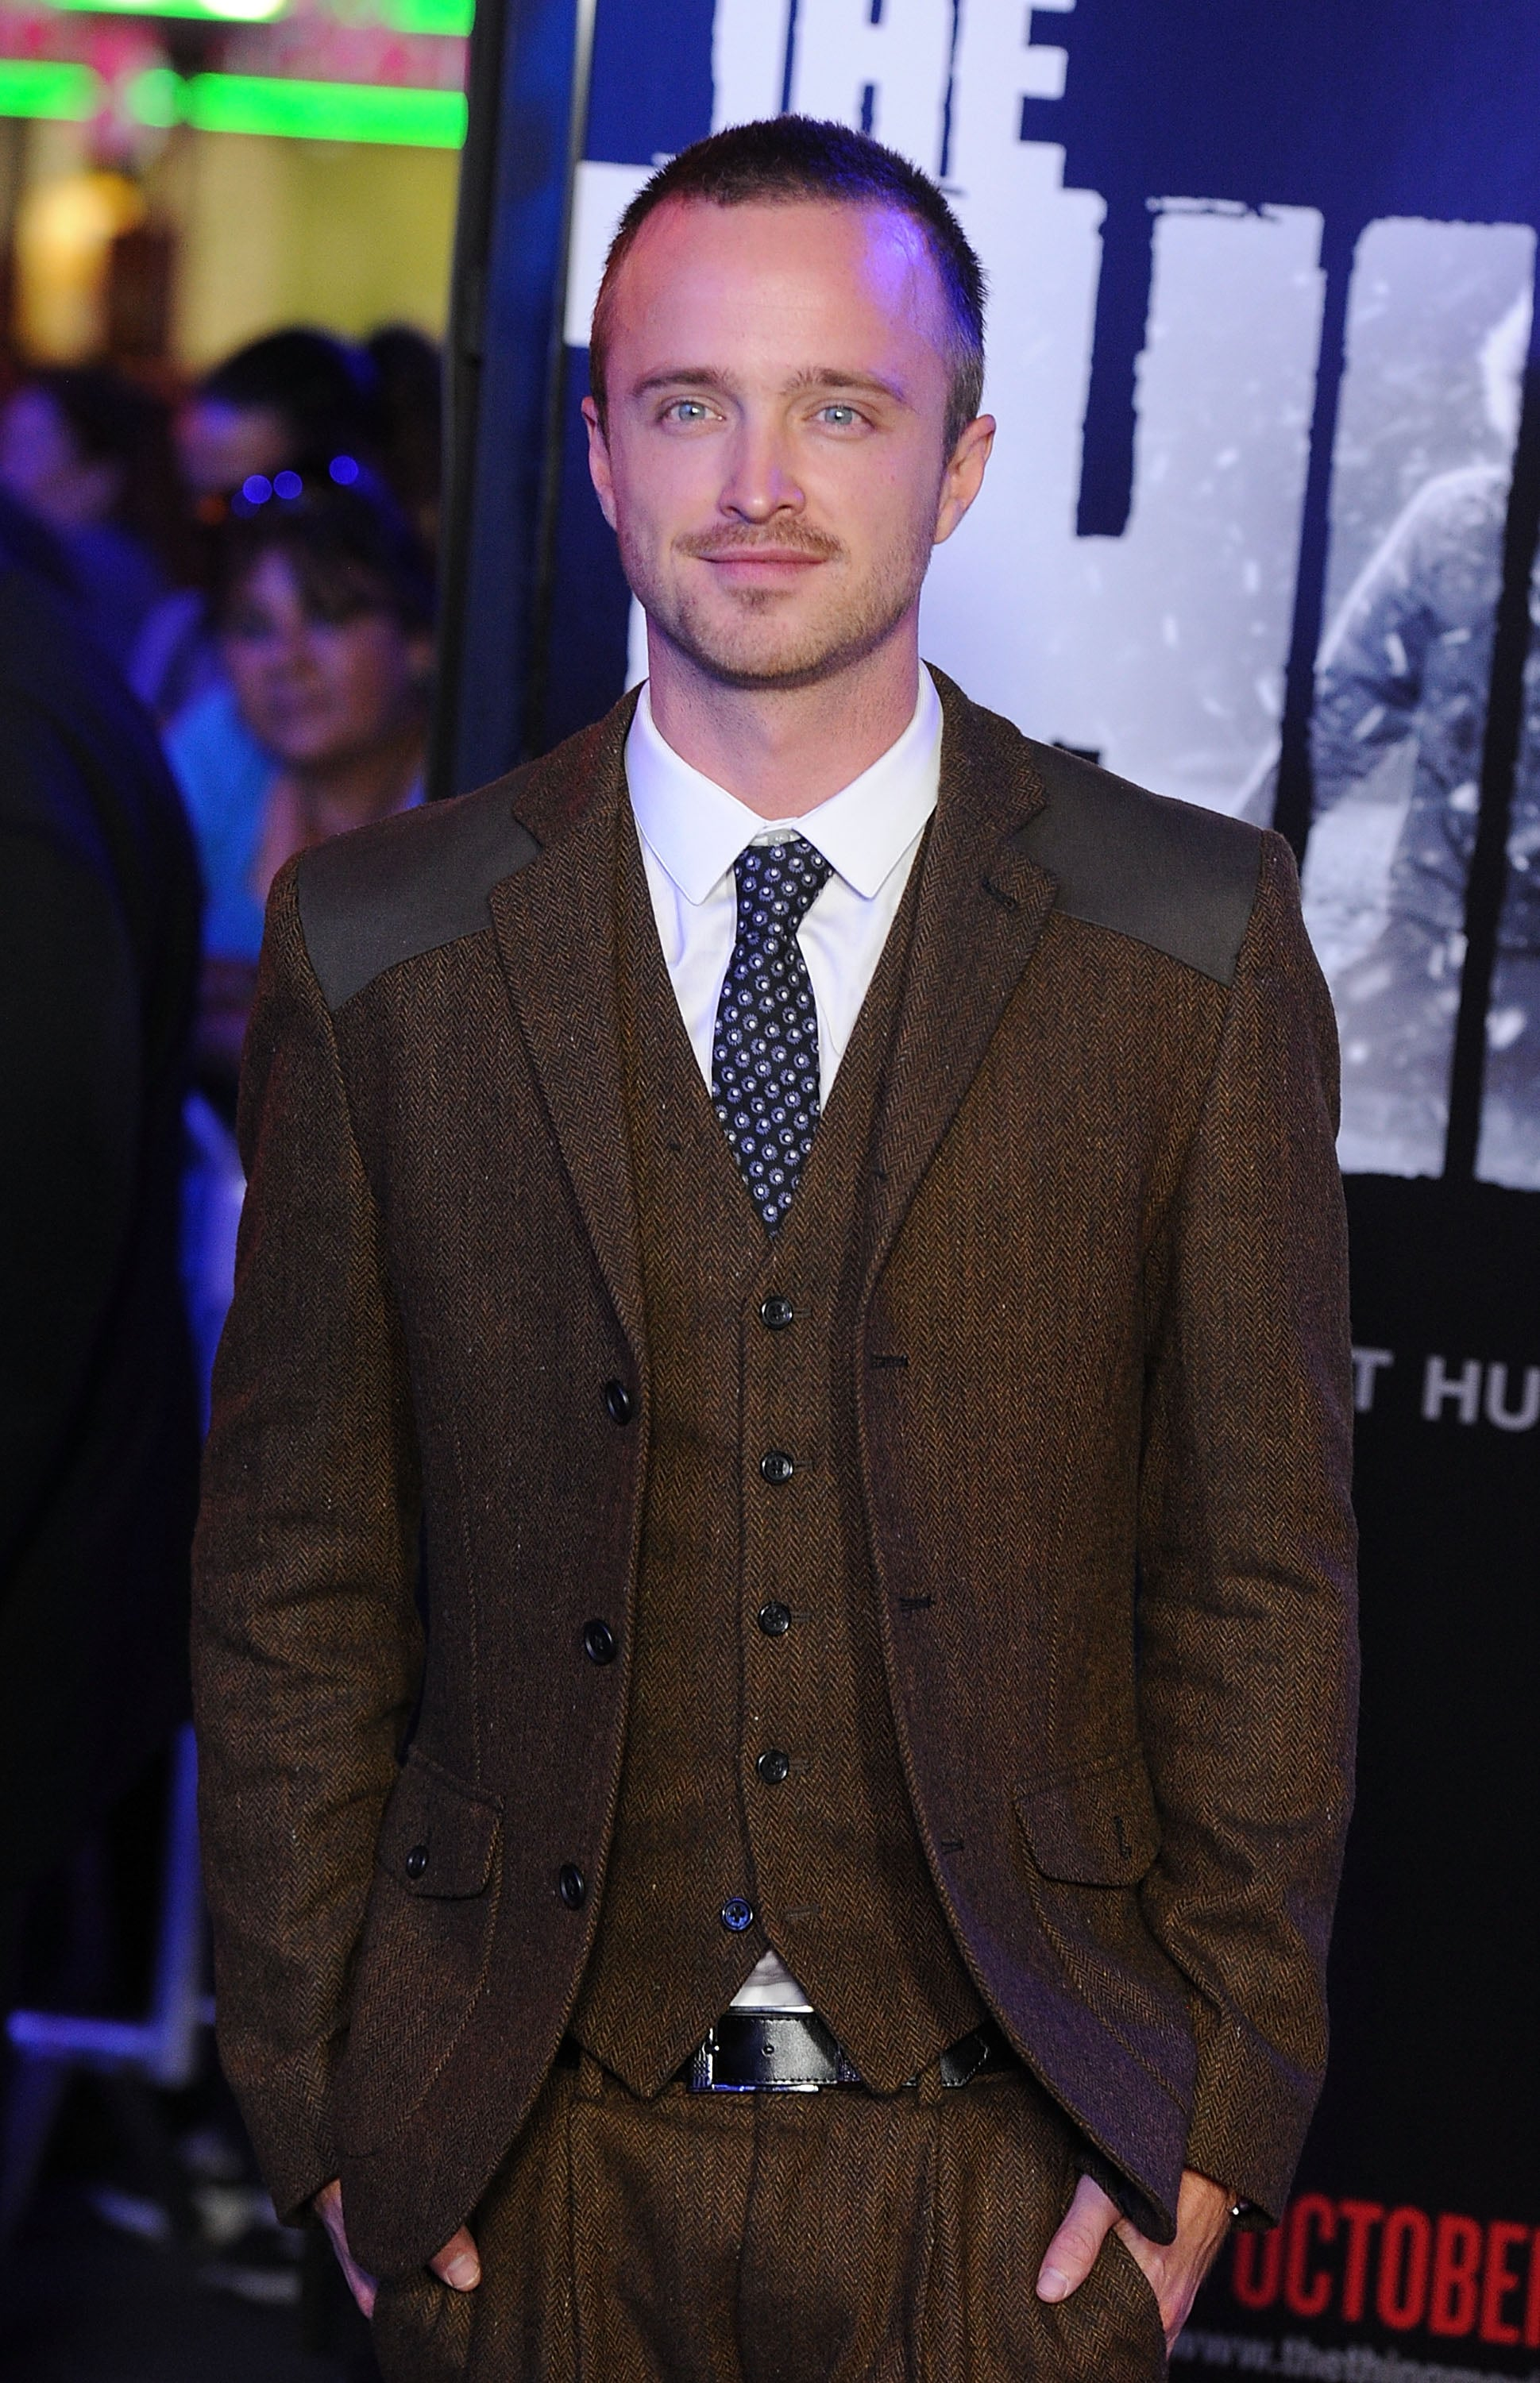 Aaron Paul wore a brown suit at the LA premiere of The Thing.